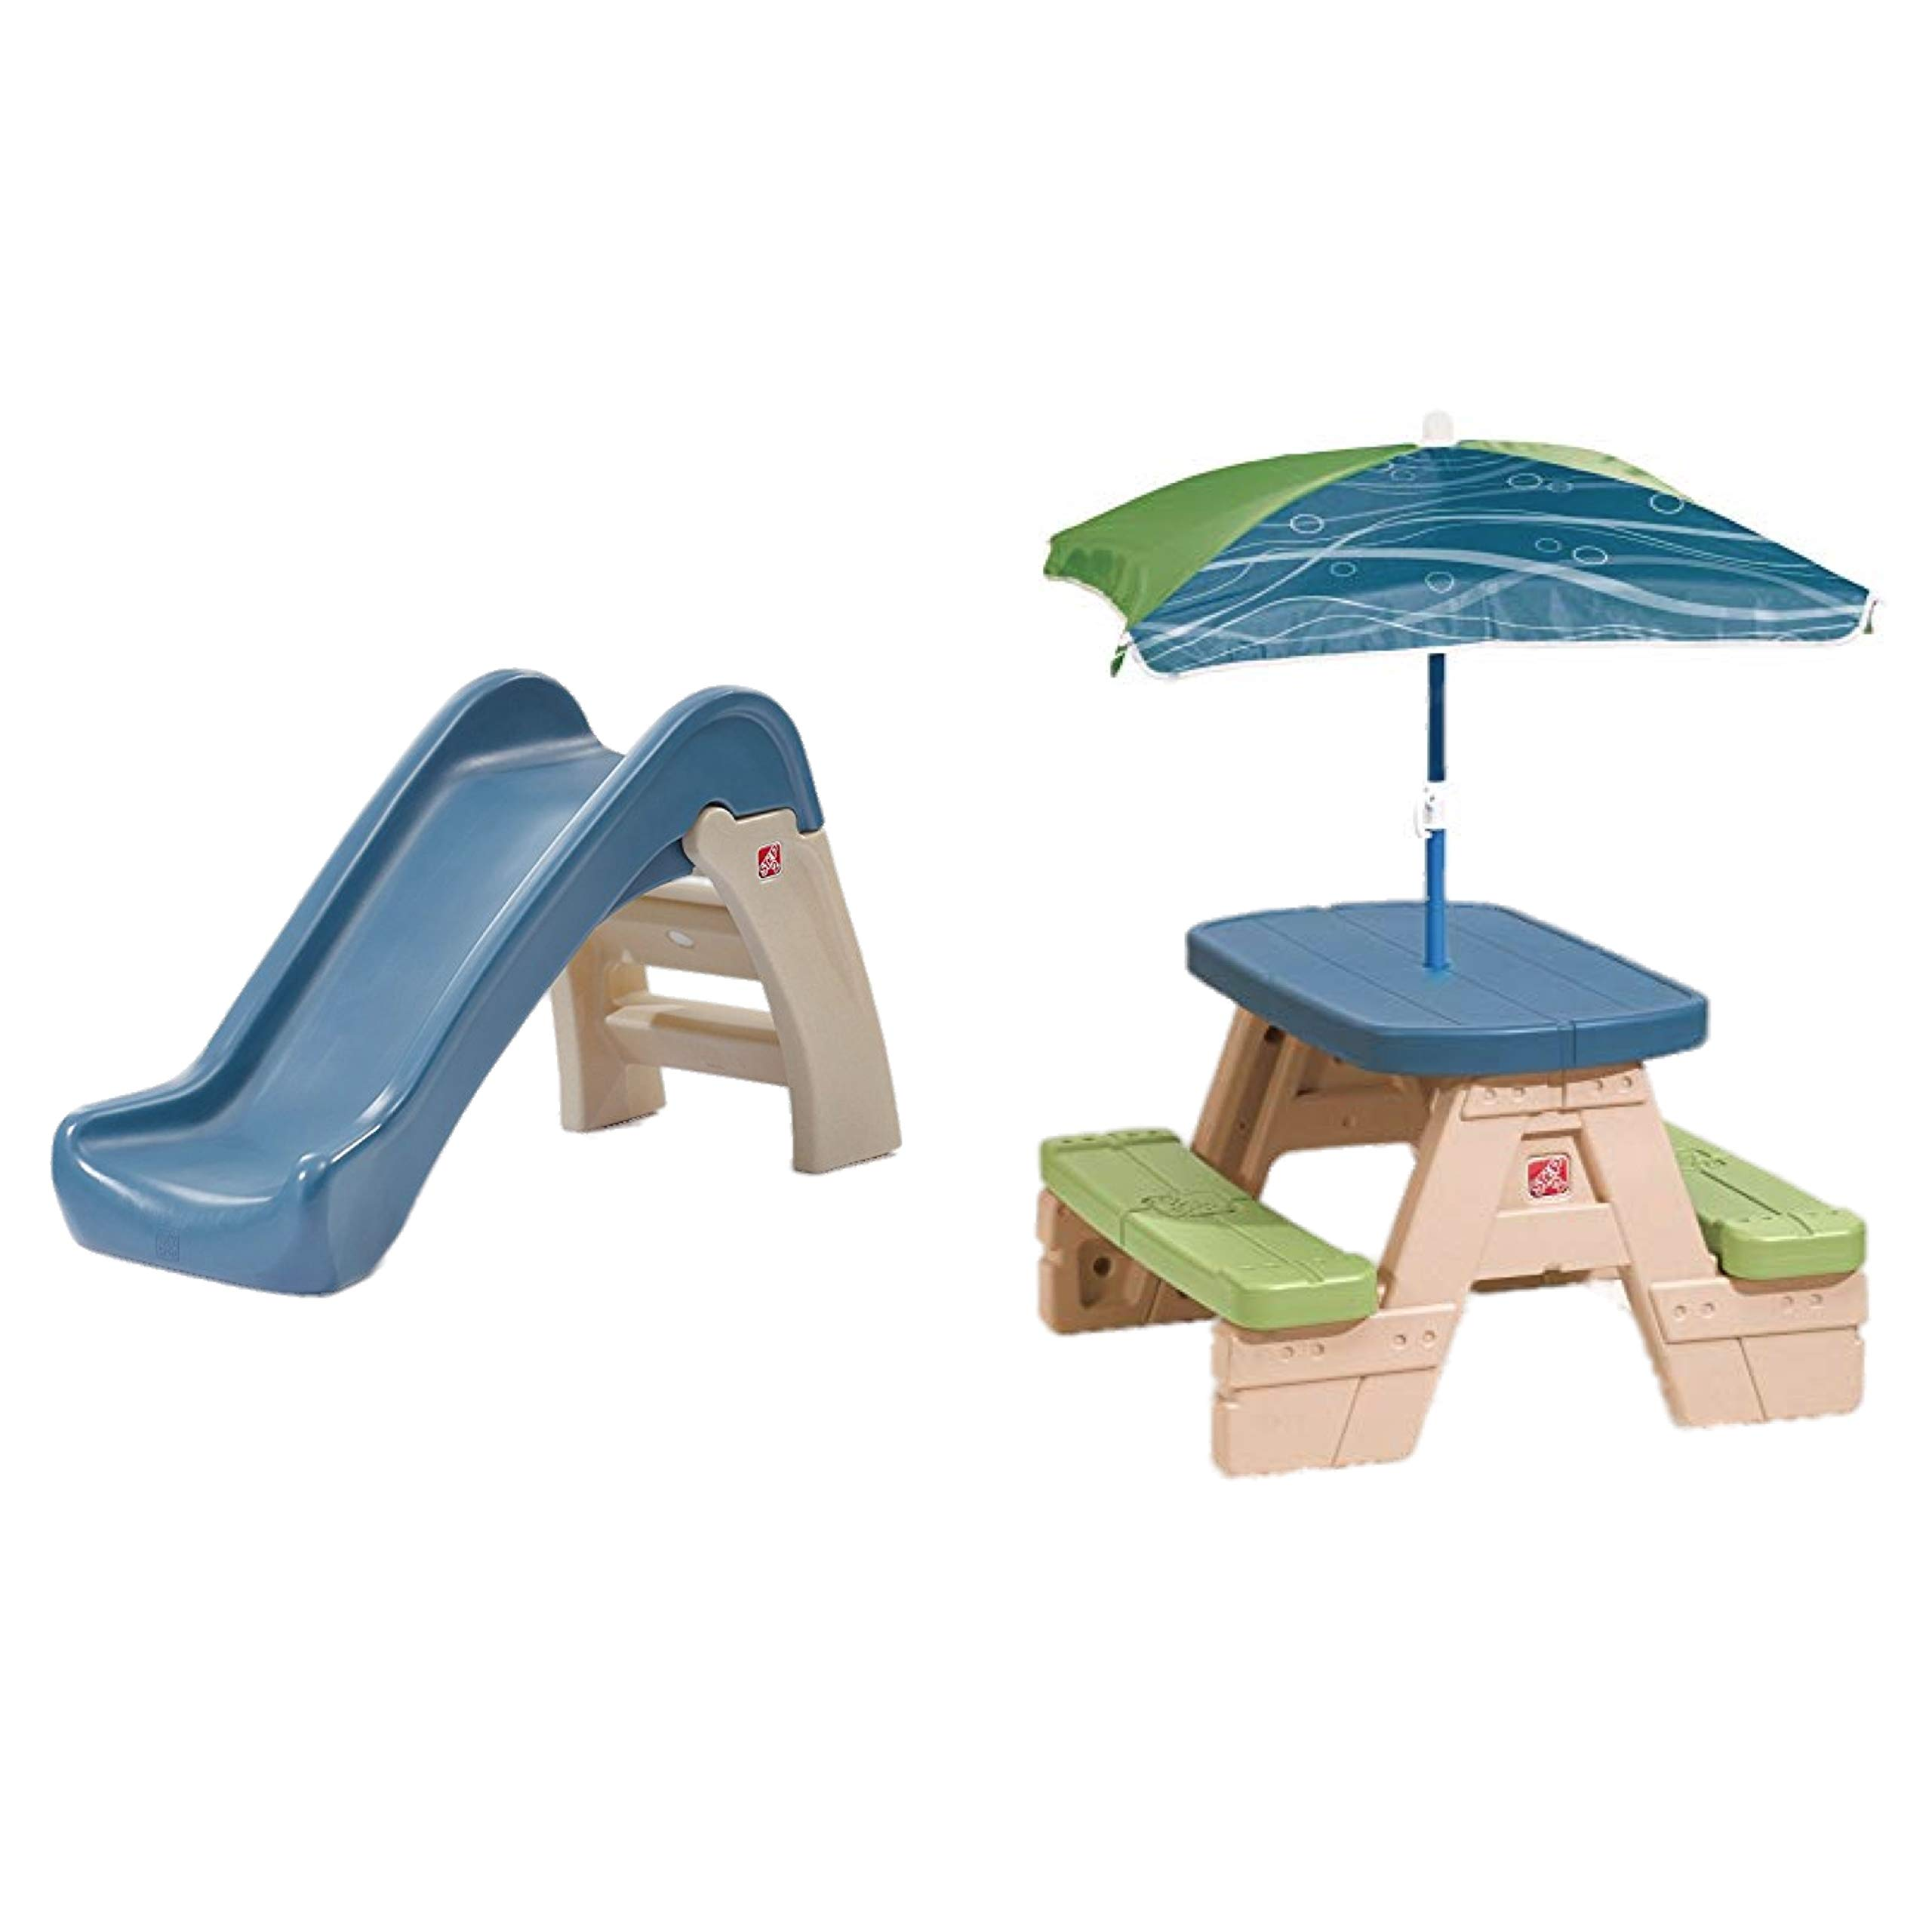 Bundle Includes 2 Items - Step2 Play and Fold Jr. Kids Slide and Step2 Sit and Play Kids Picnic Table with Umbrella